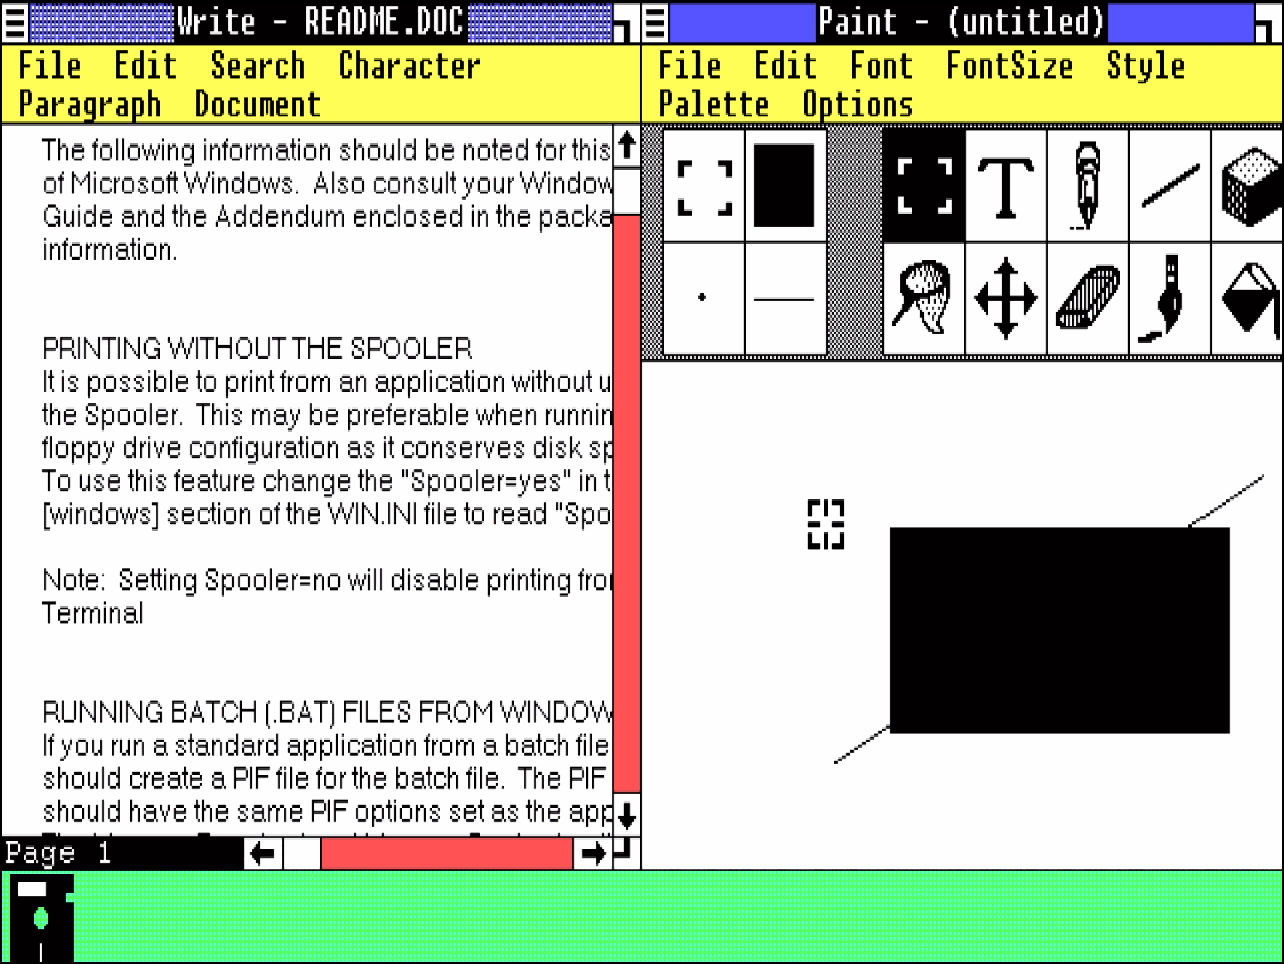 Microsoft Windows Version 1.01 with open windows for Write and Paint, below minimised the MS-DOS-Executive